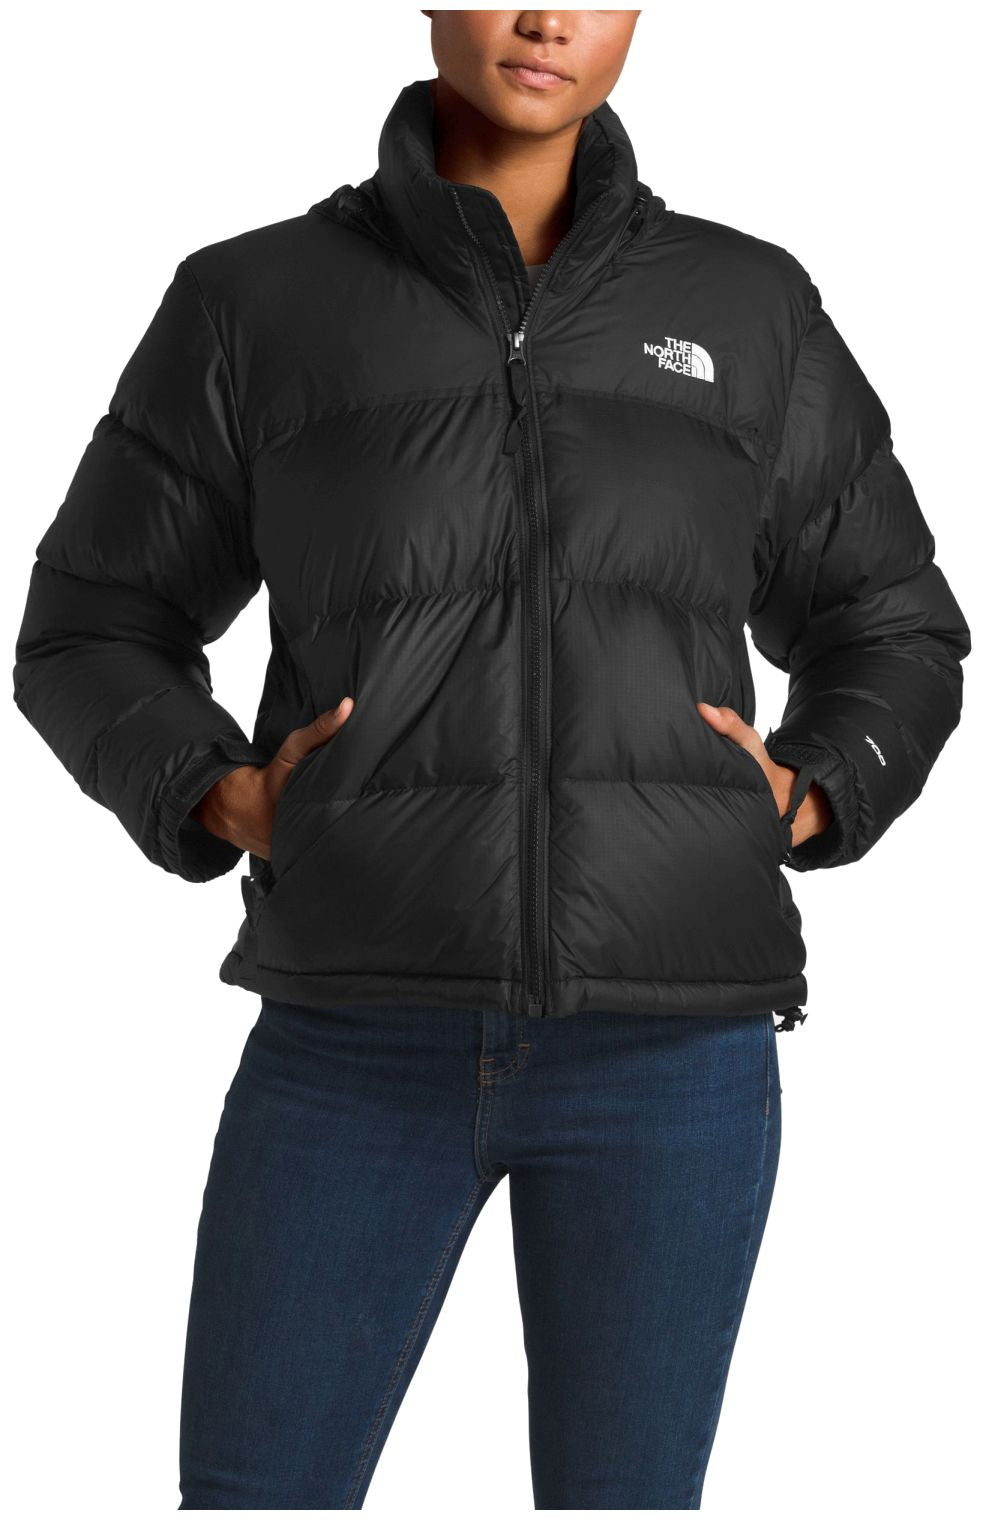 Fabriksnye The North Face 1996 Retro Nuptse Jacket - Women's - Gear Coop OT-18